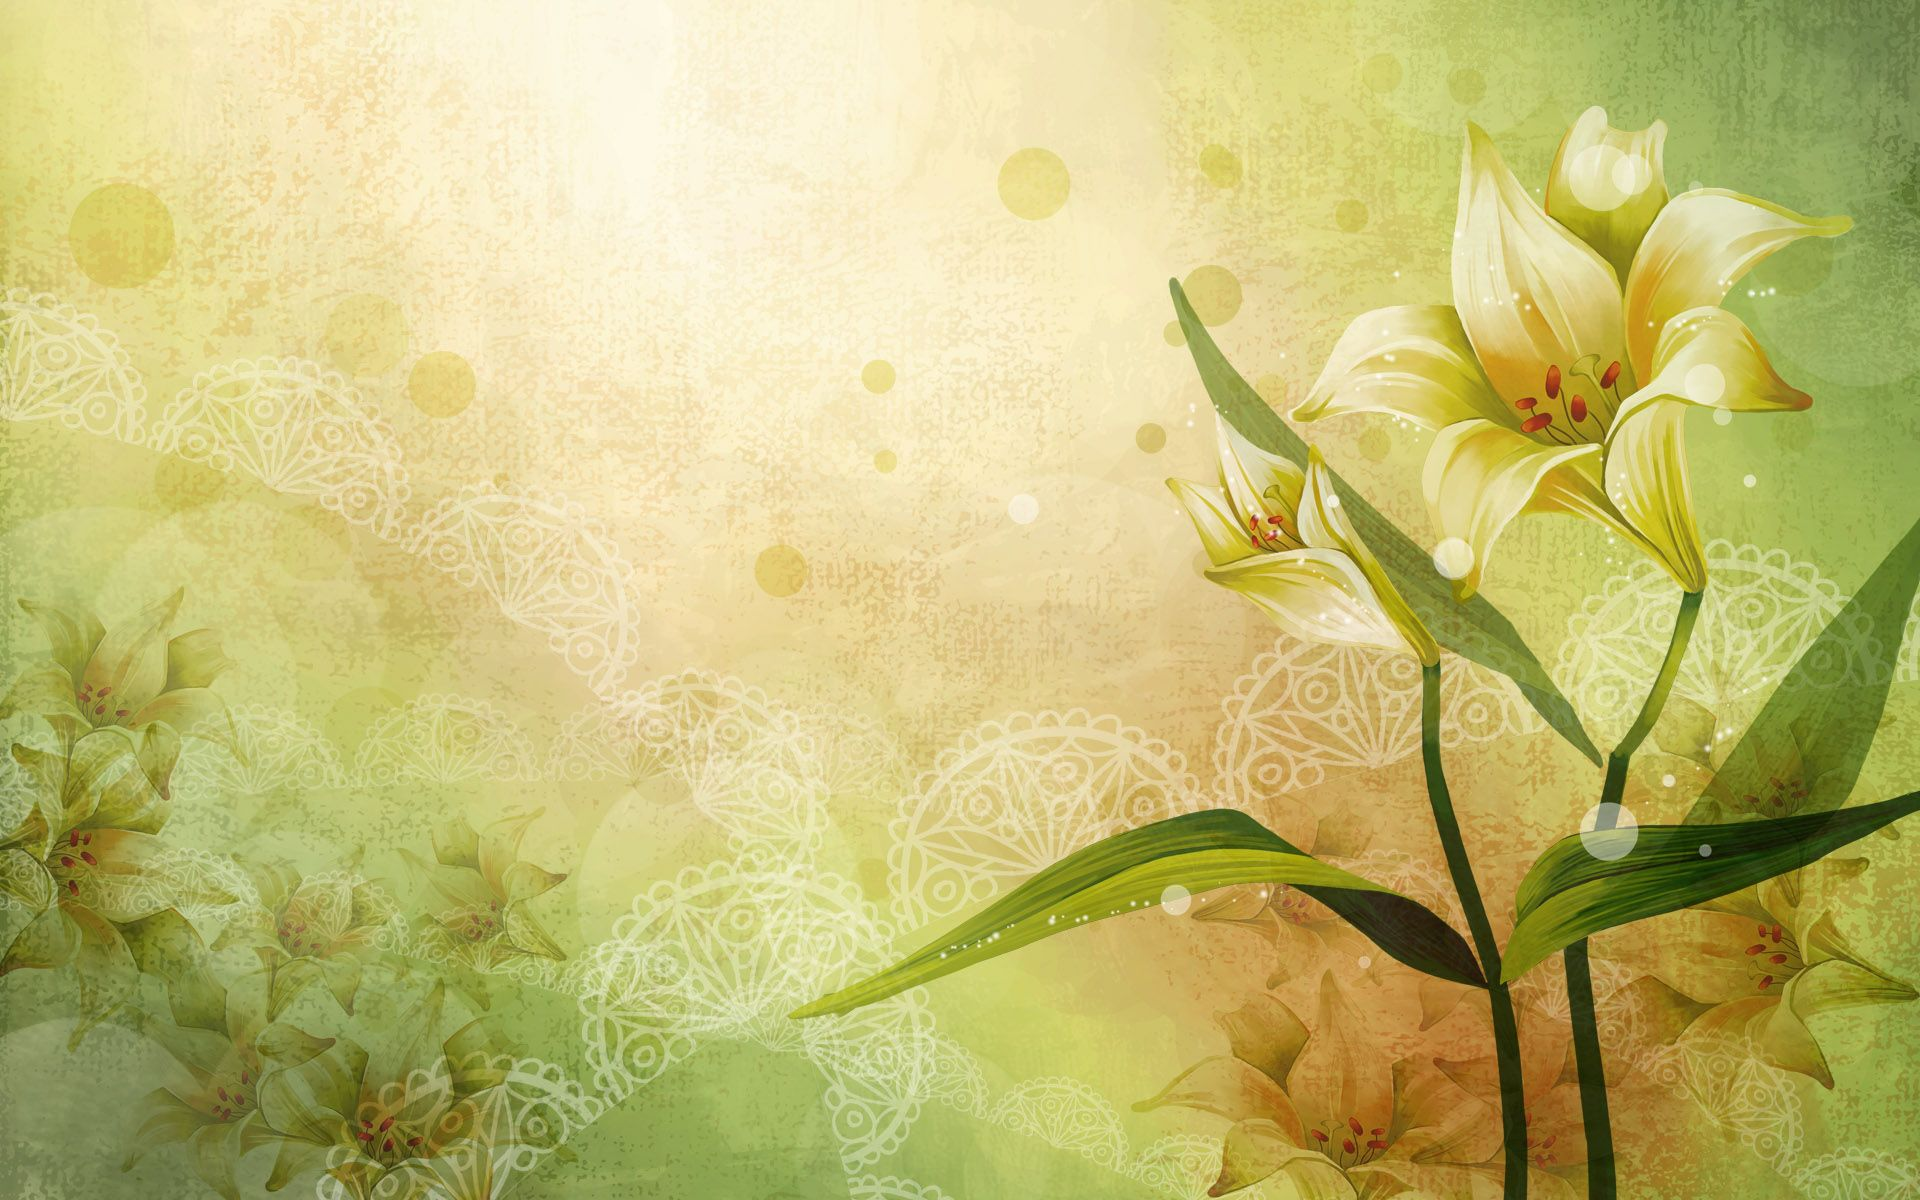 Soothing Flower Background Wallpaper Vector Flowers Flower Backgrounds Flower theme wallpaper images